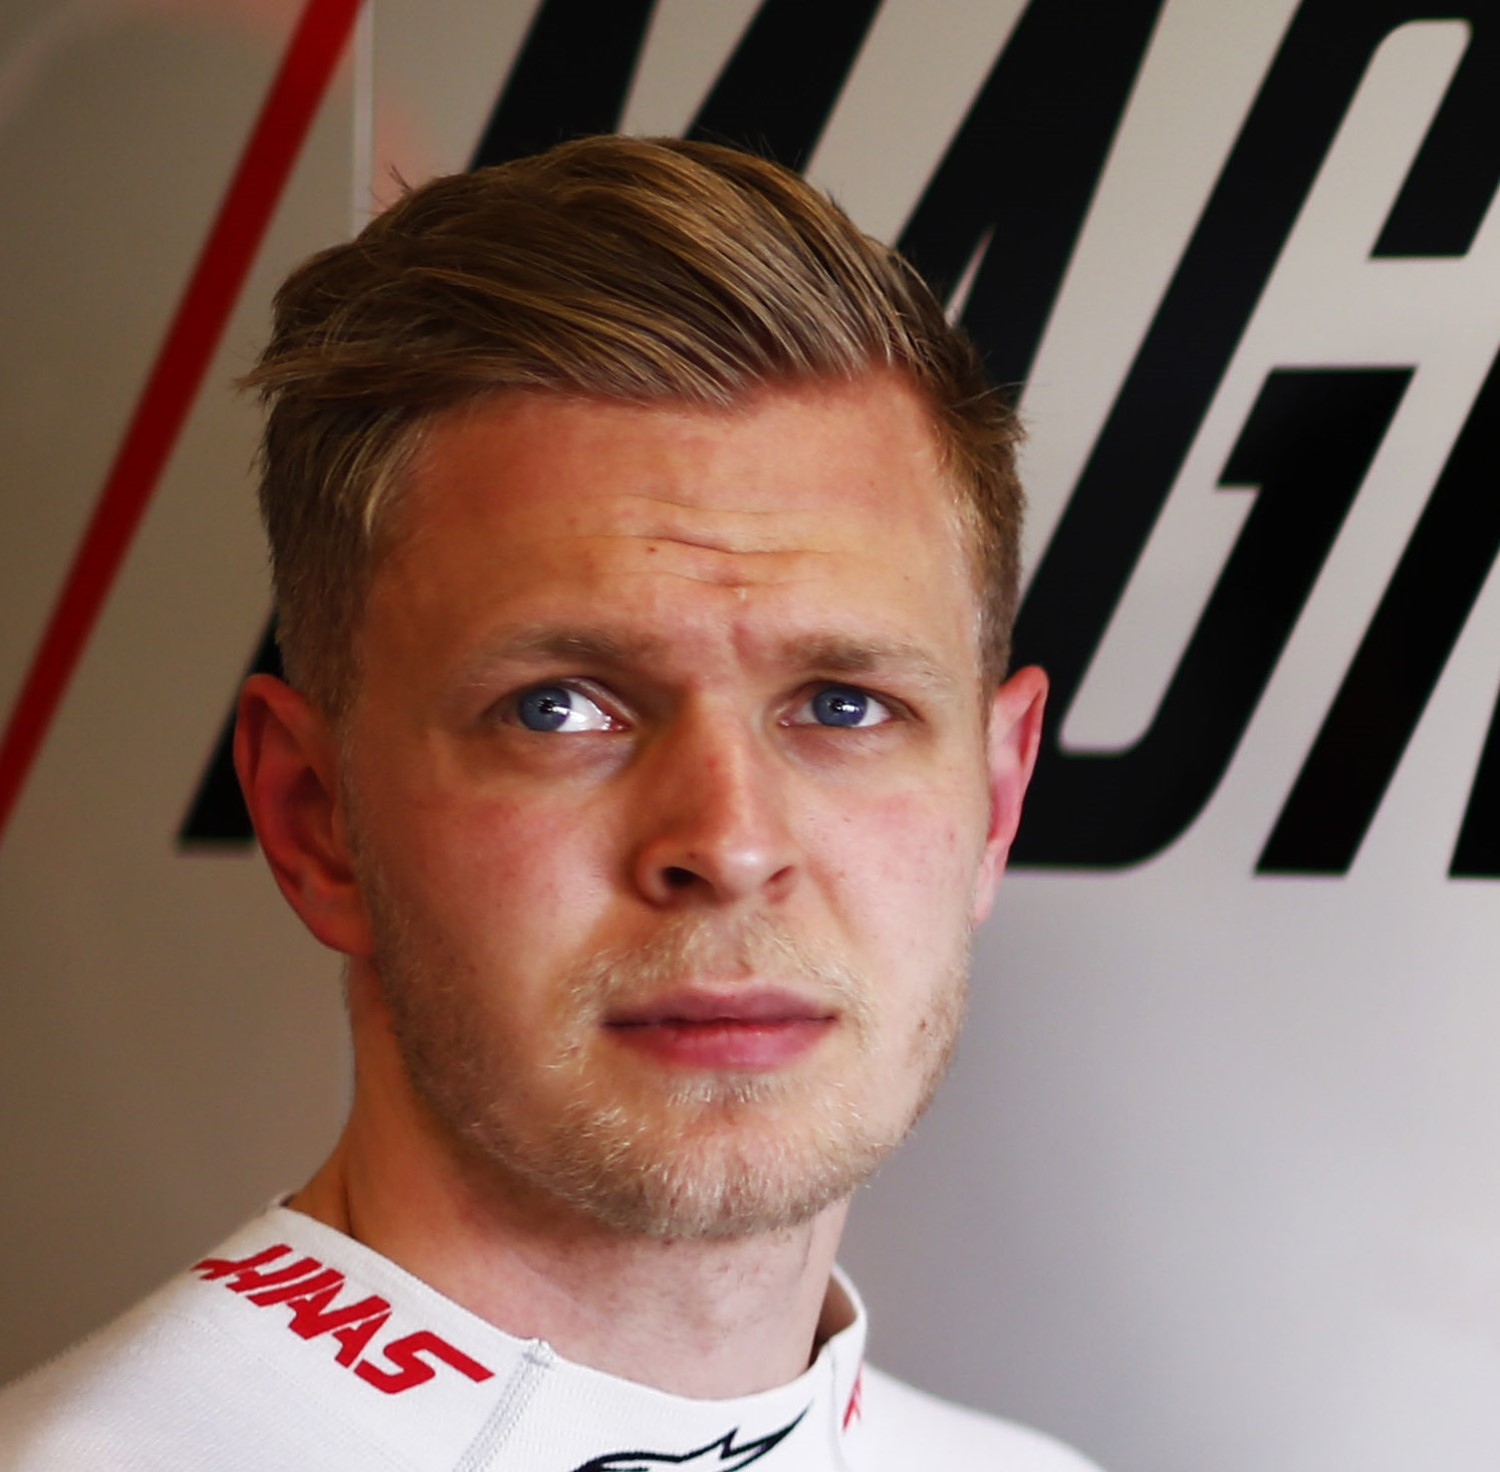 Magnussen is worried his wallet is about to get a whole lot lighter